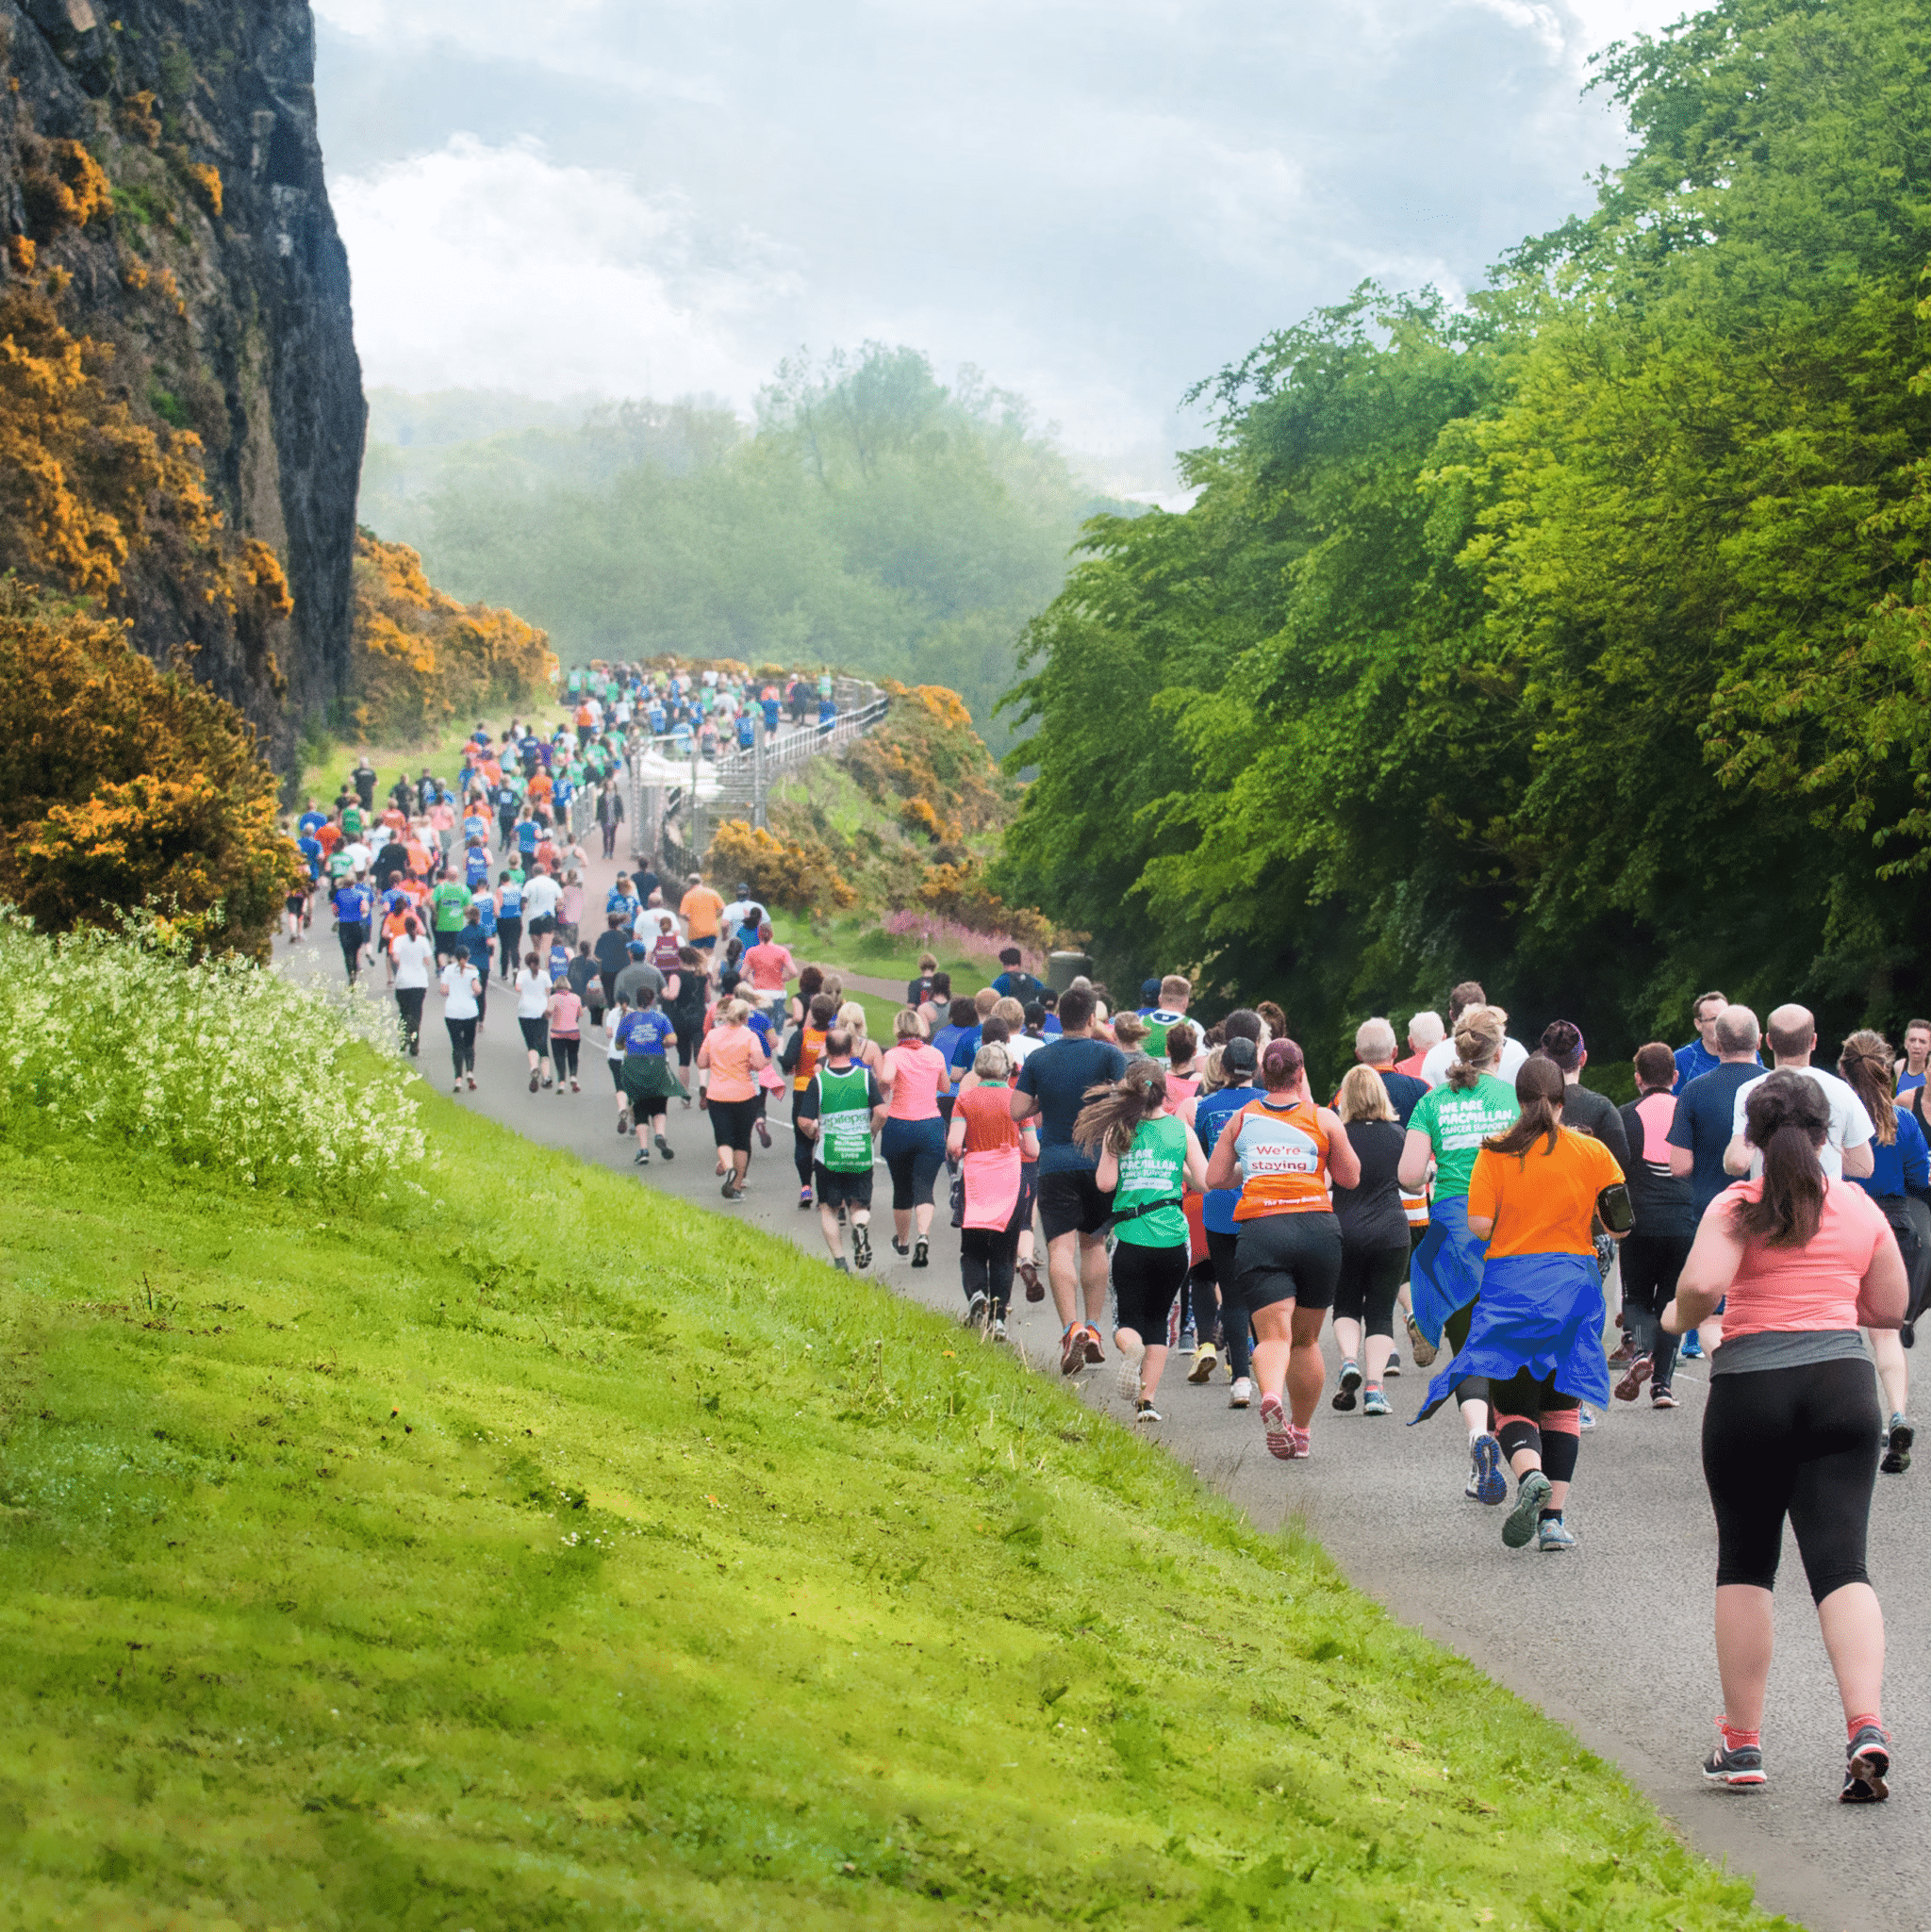 Image shows hundreds of runners running down a path in Holyrood Park. Yellow flowering gorse contrasts against the dark rock cliffs.